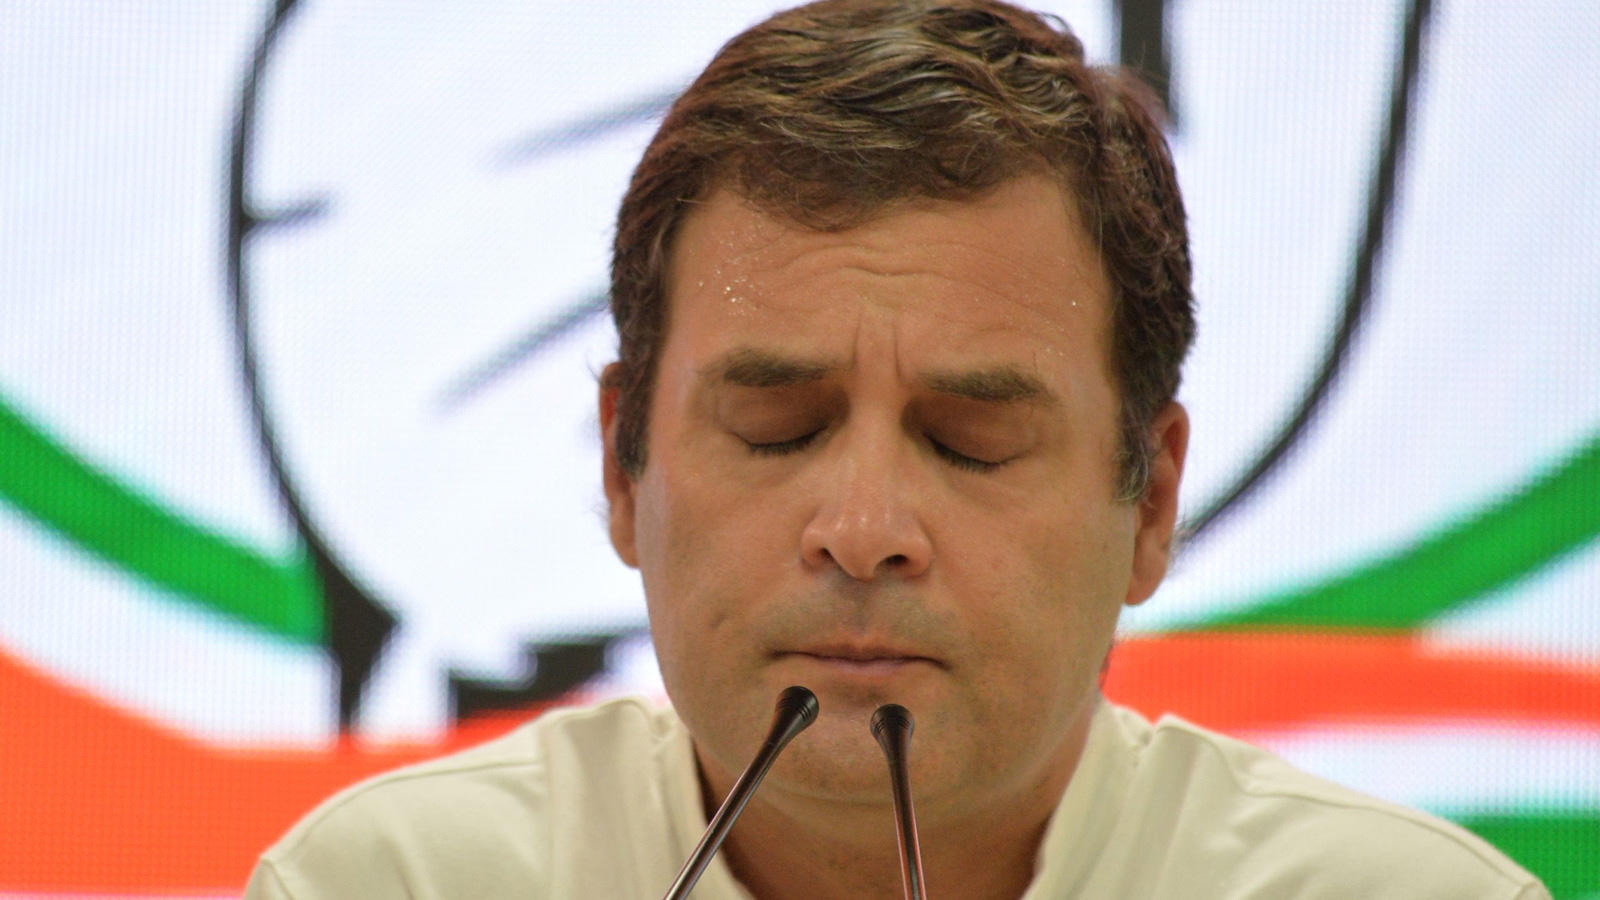 congress-fails-to-connect-on-basic-issues-rahul-gandhis-leadership-under-scrutiny